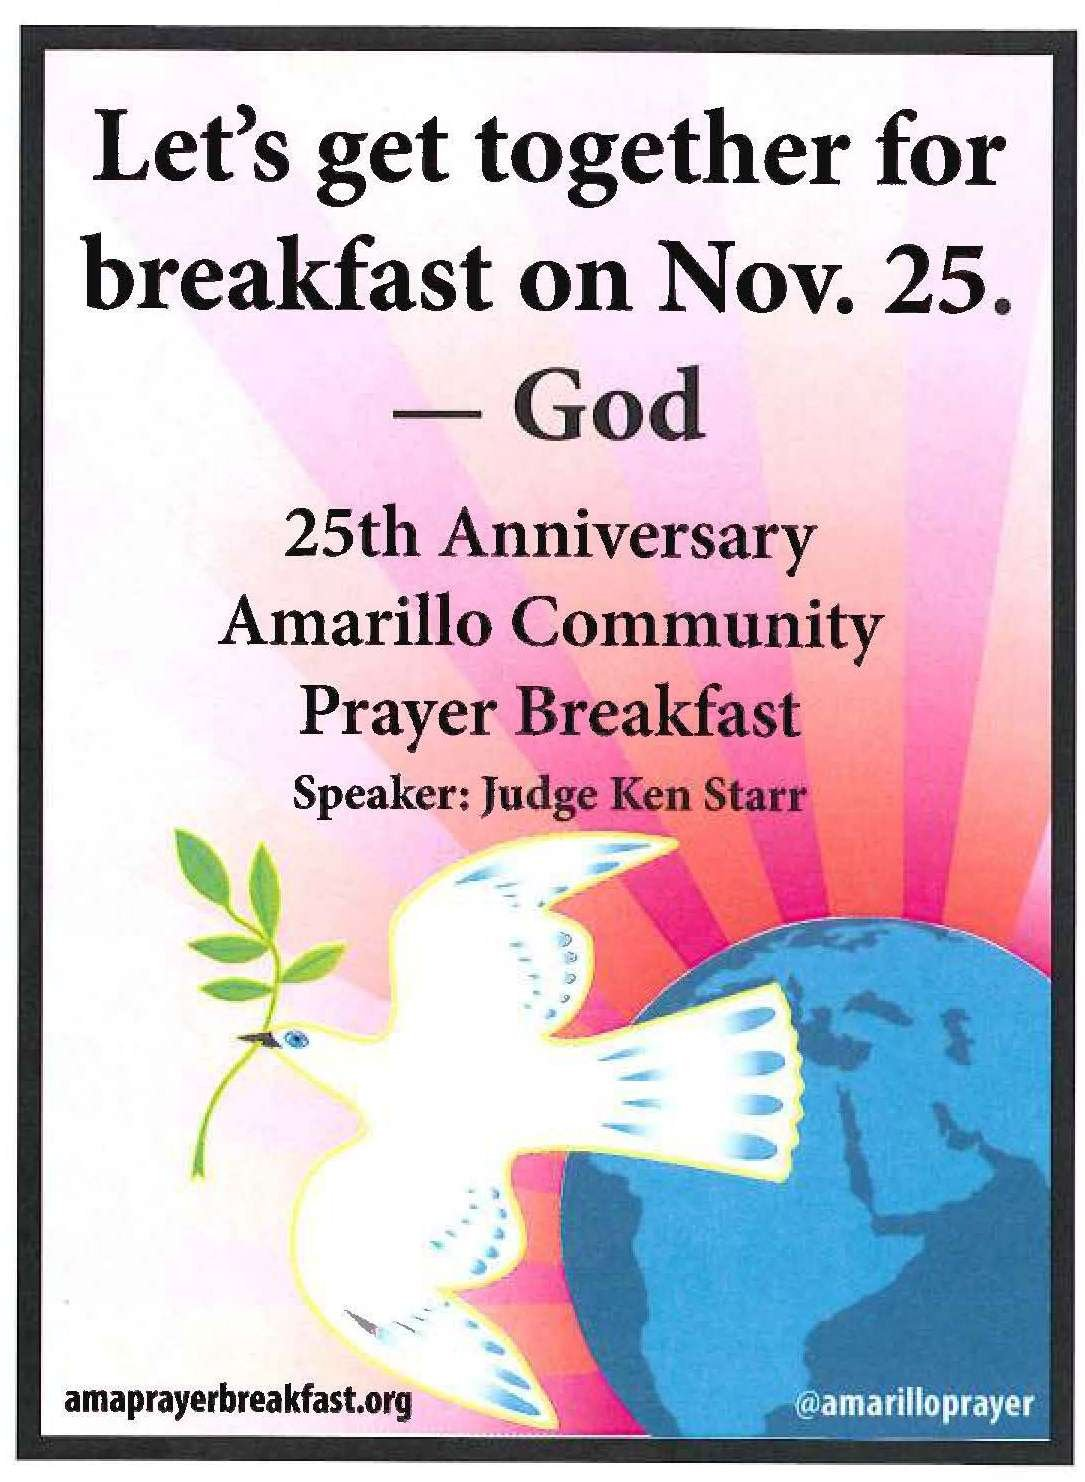 Amarillo Community Prayer Breakfast